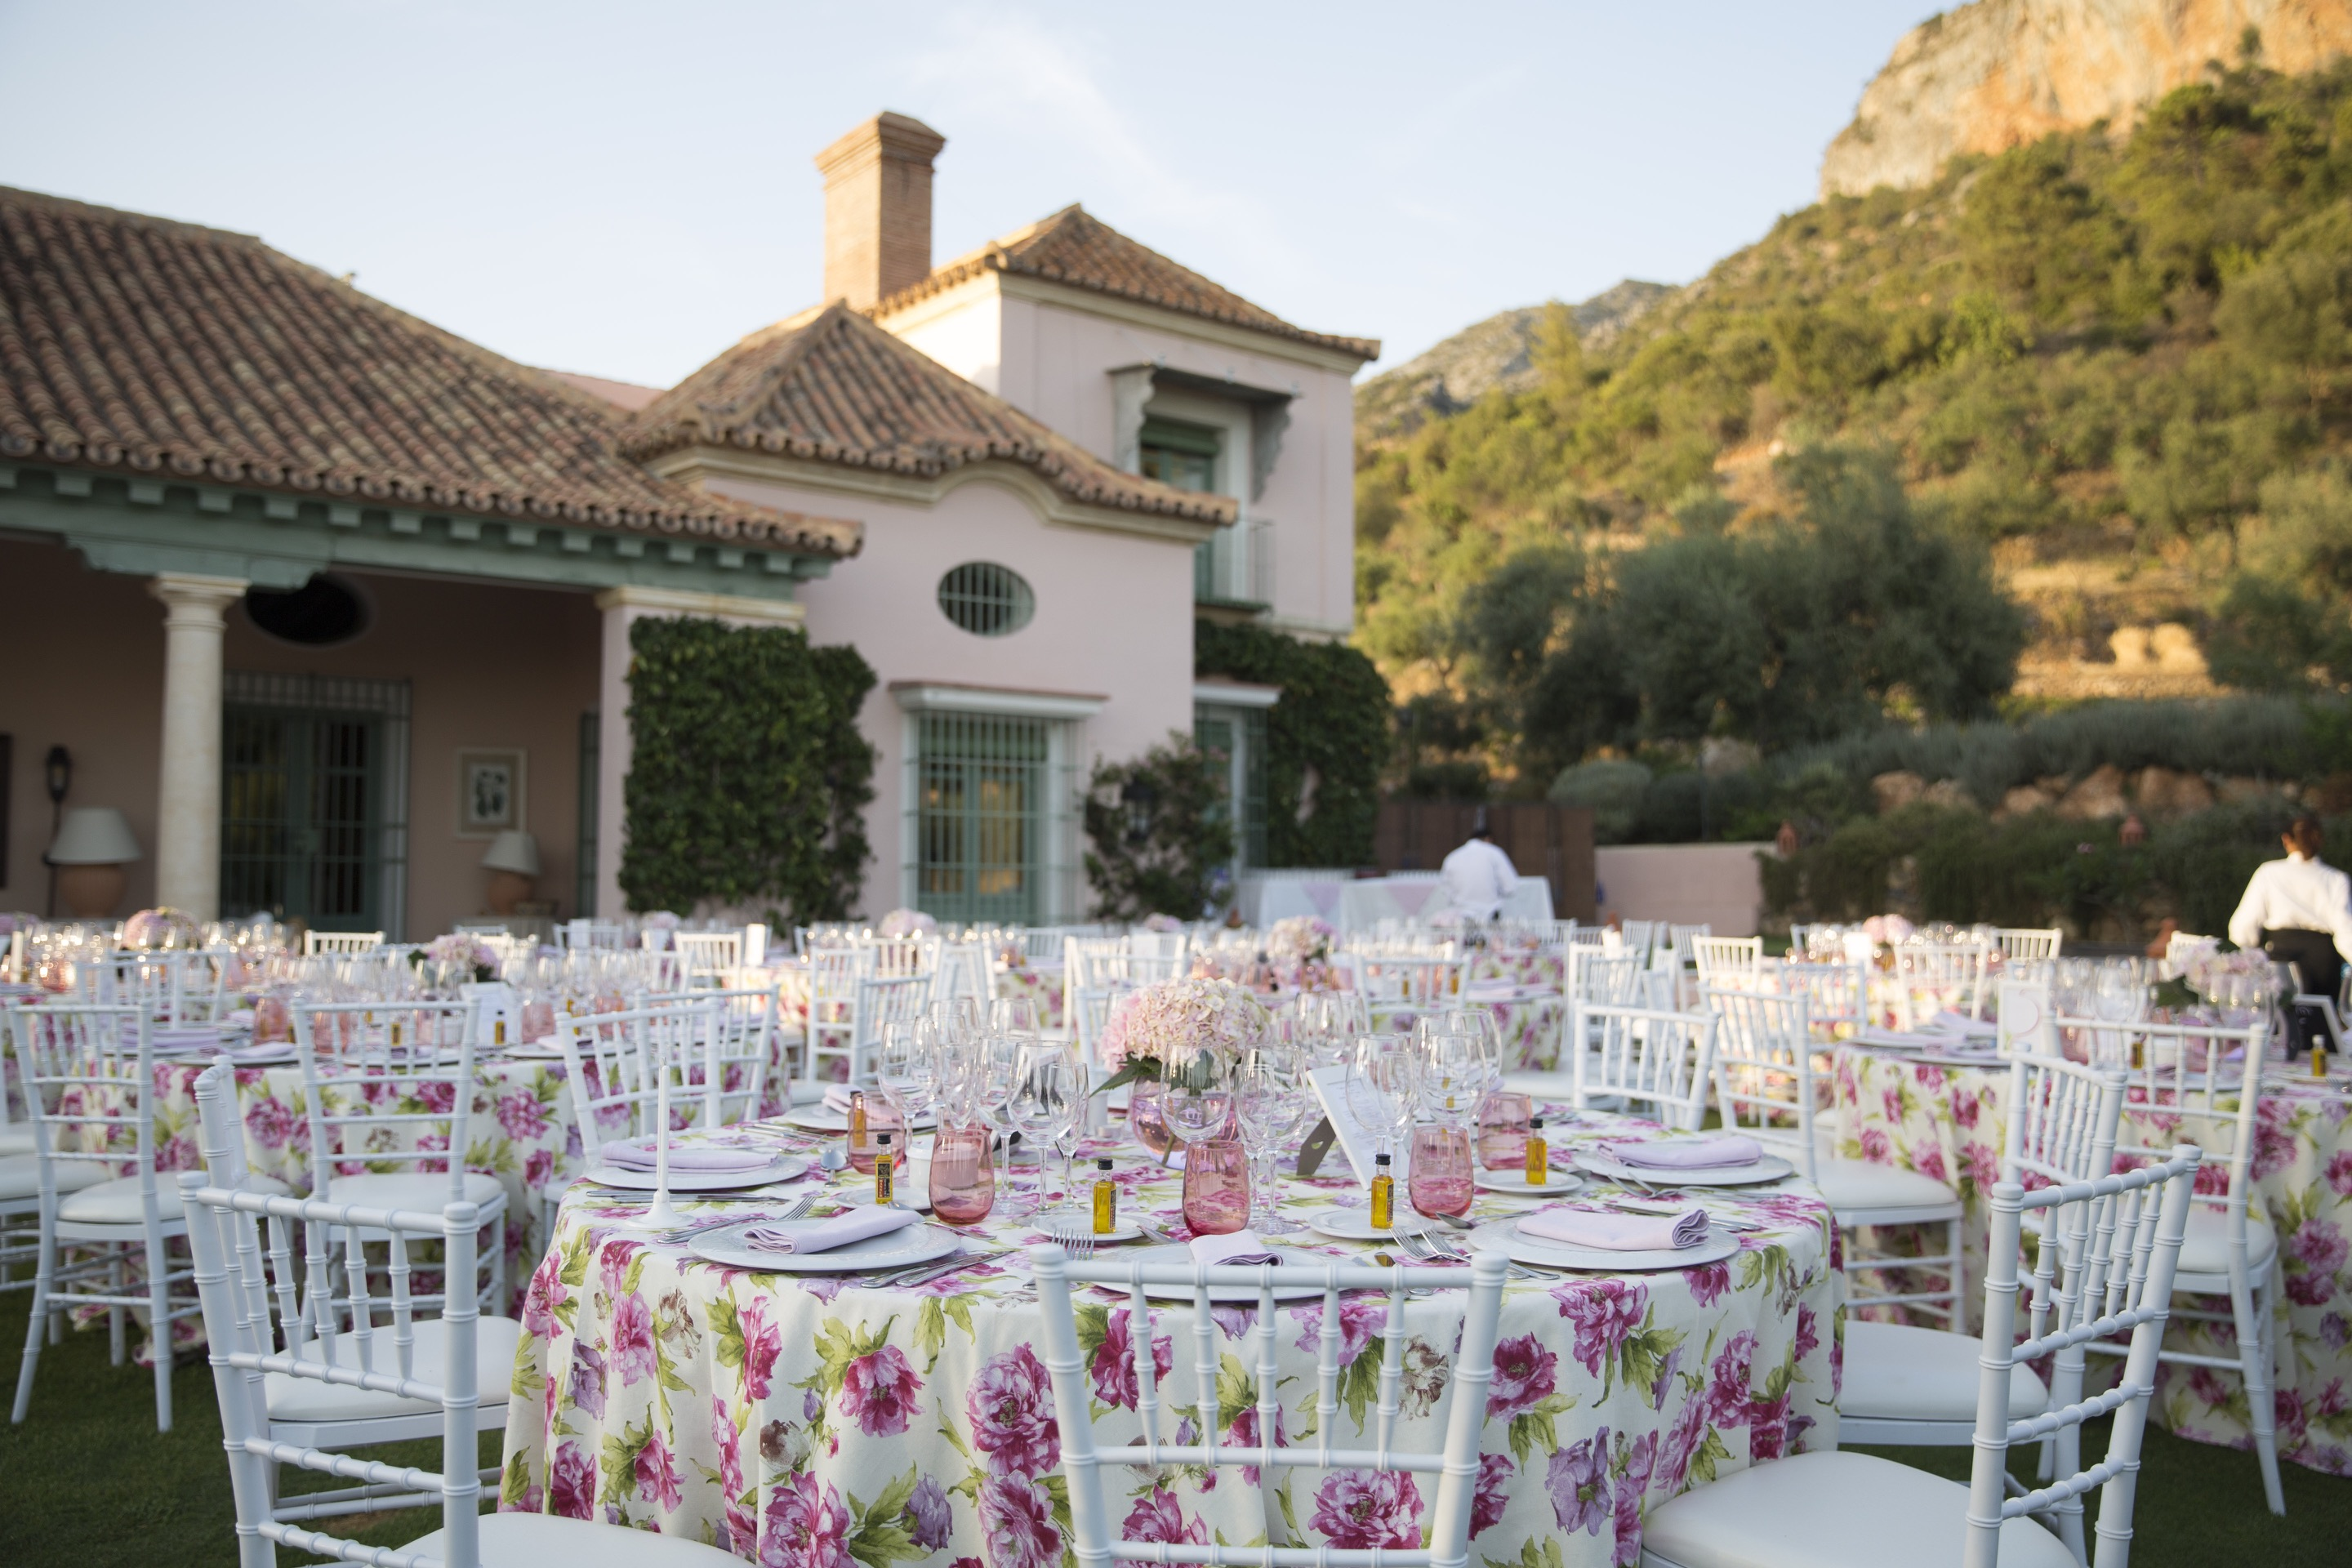 Si-Quiero-Wedding-Planner-By-Sira-Antequera-Sonia-Carlos-16